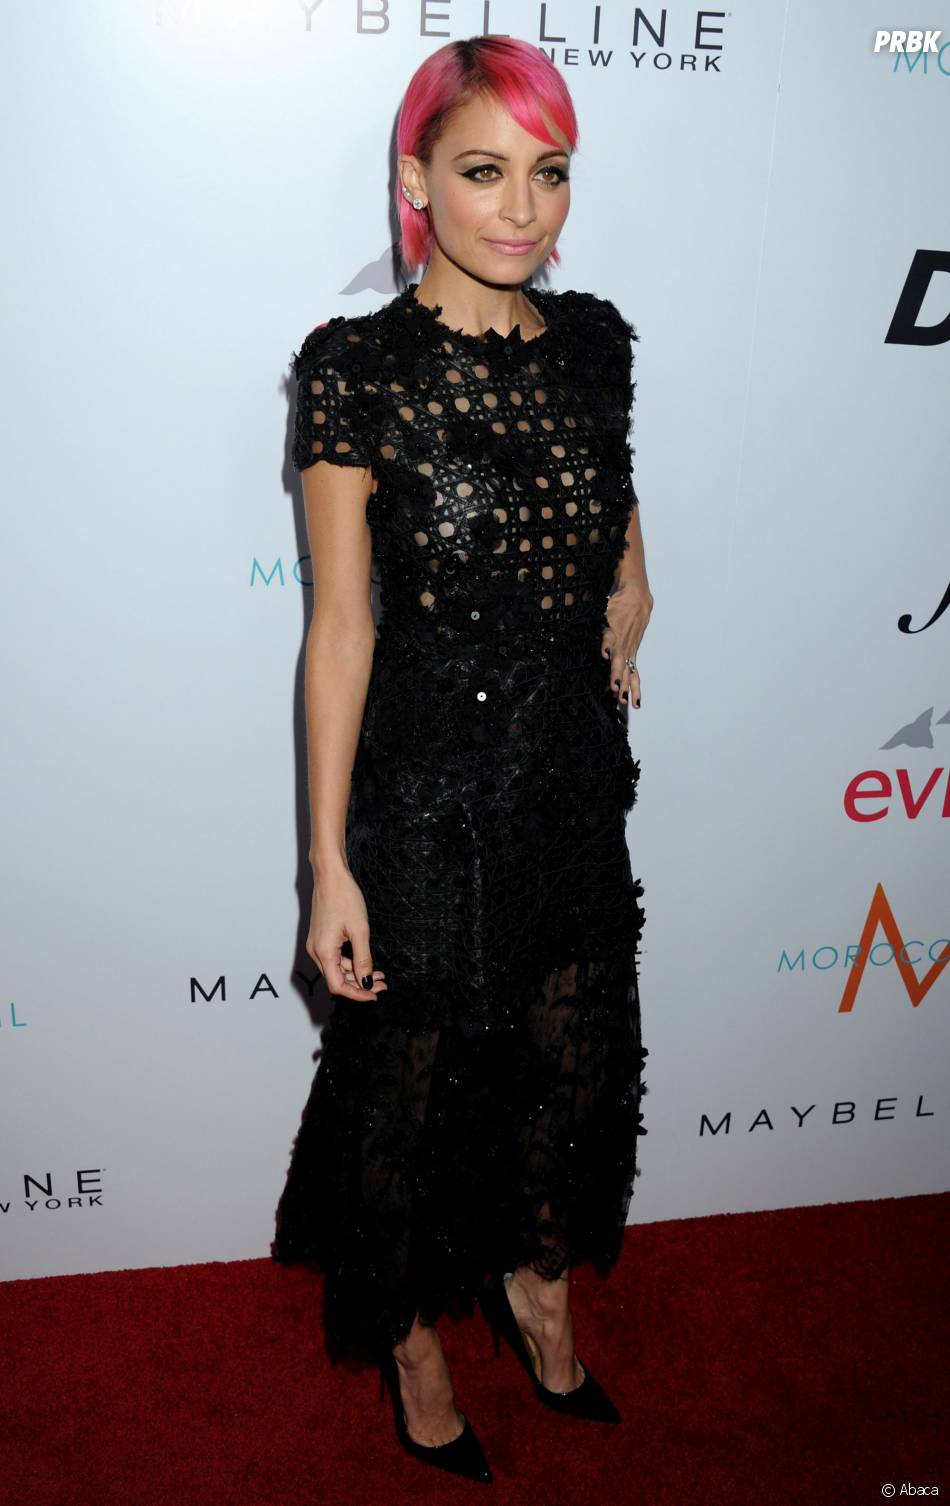 Nicole Richie à la cérémonie des Fashion LA Awards le 22 janvier 2015 à Los Angeles